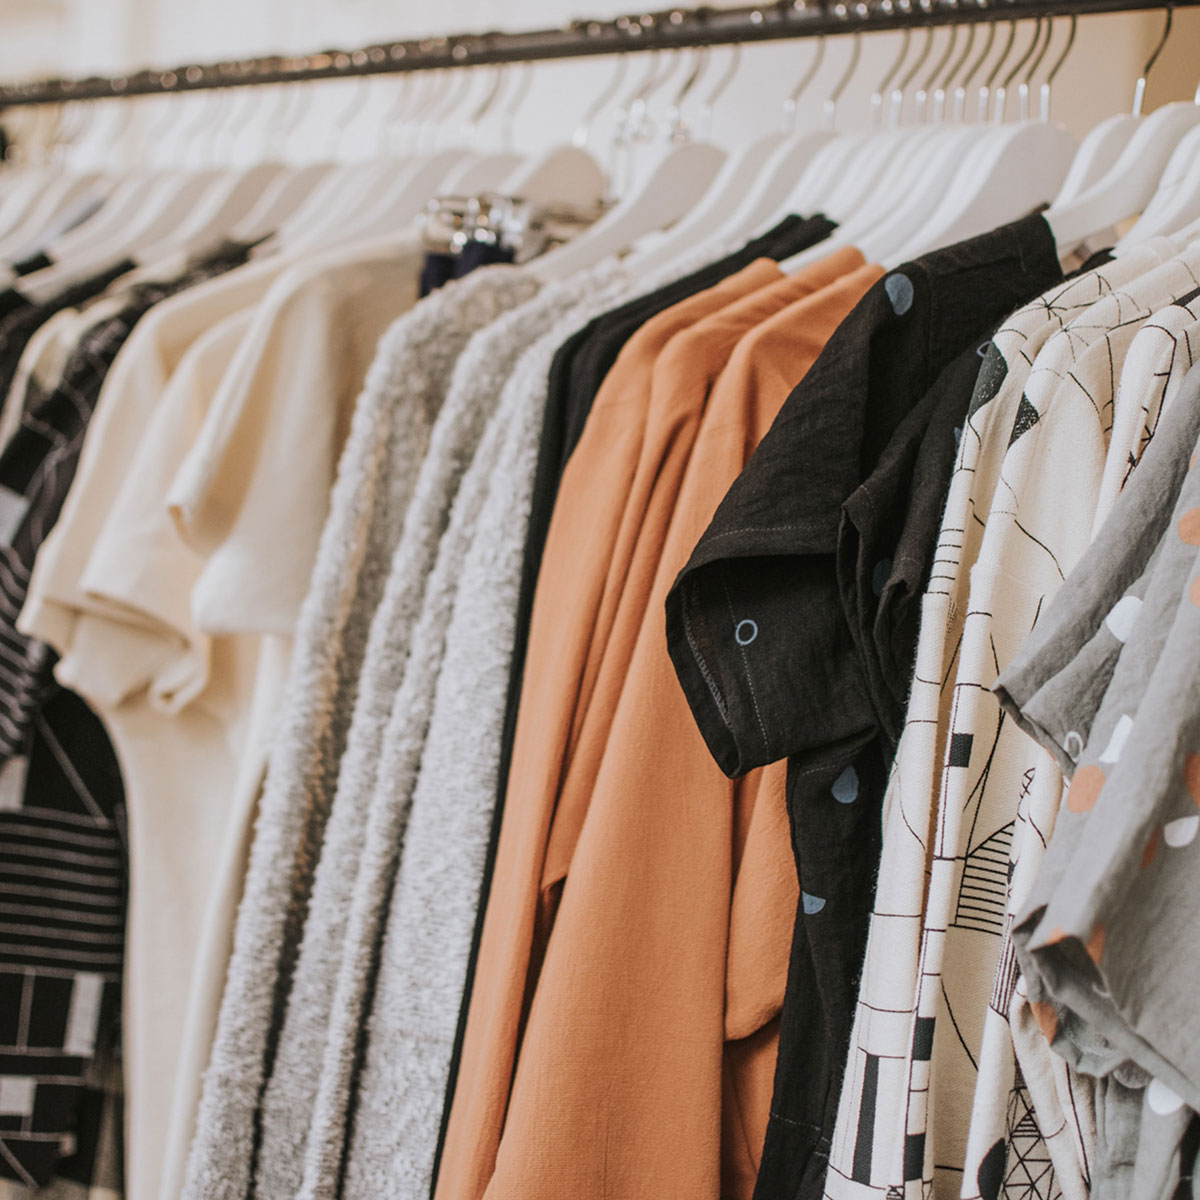 Second Hand Clothing in East Africa: What the Fashion